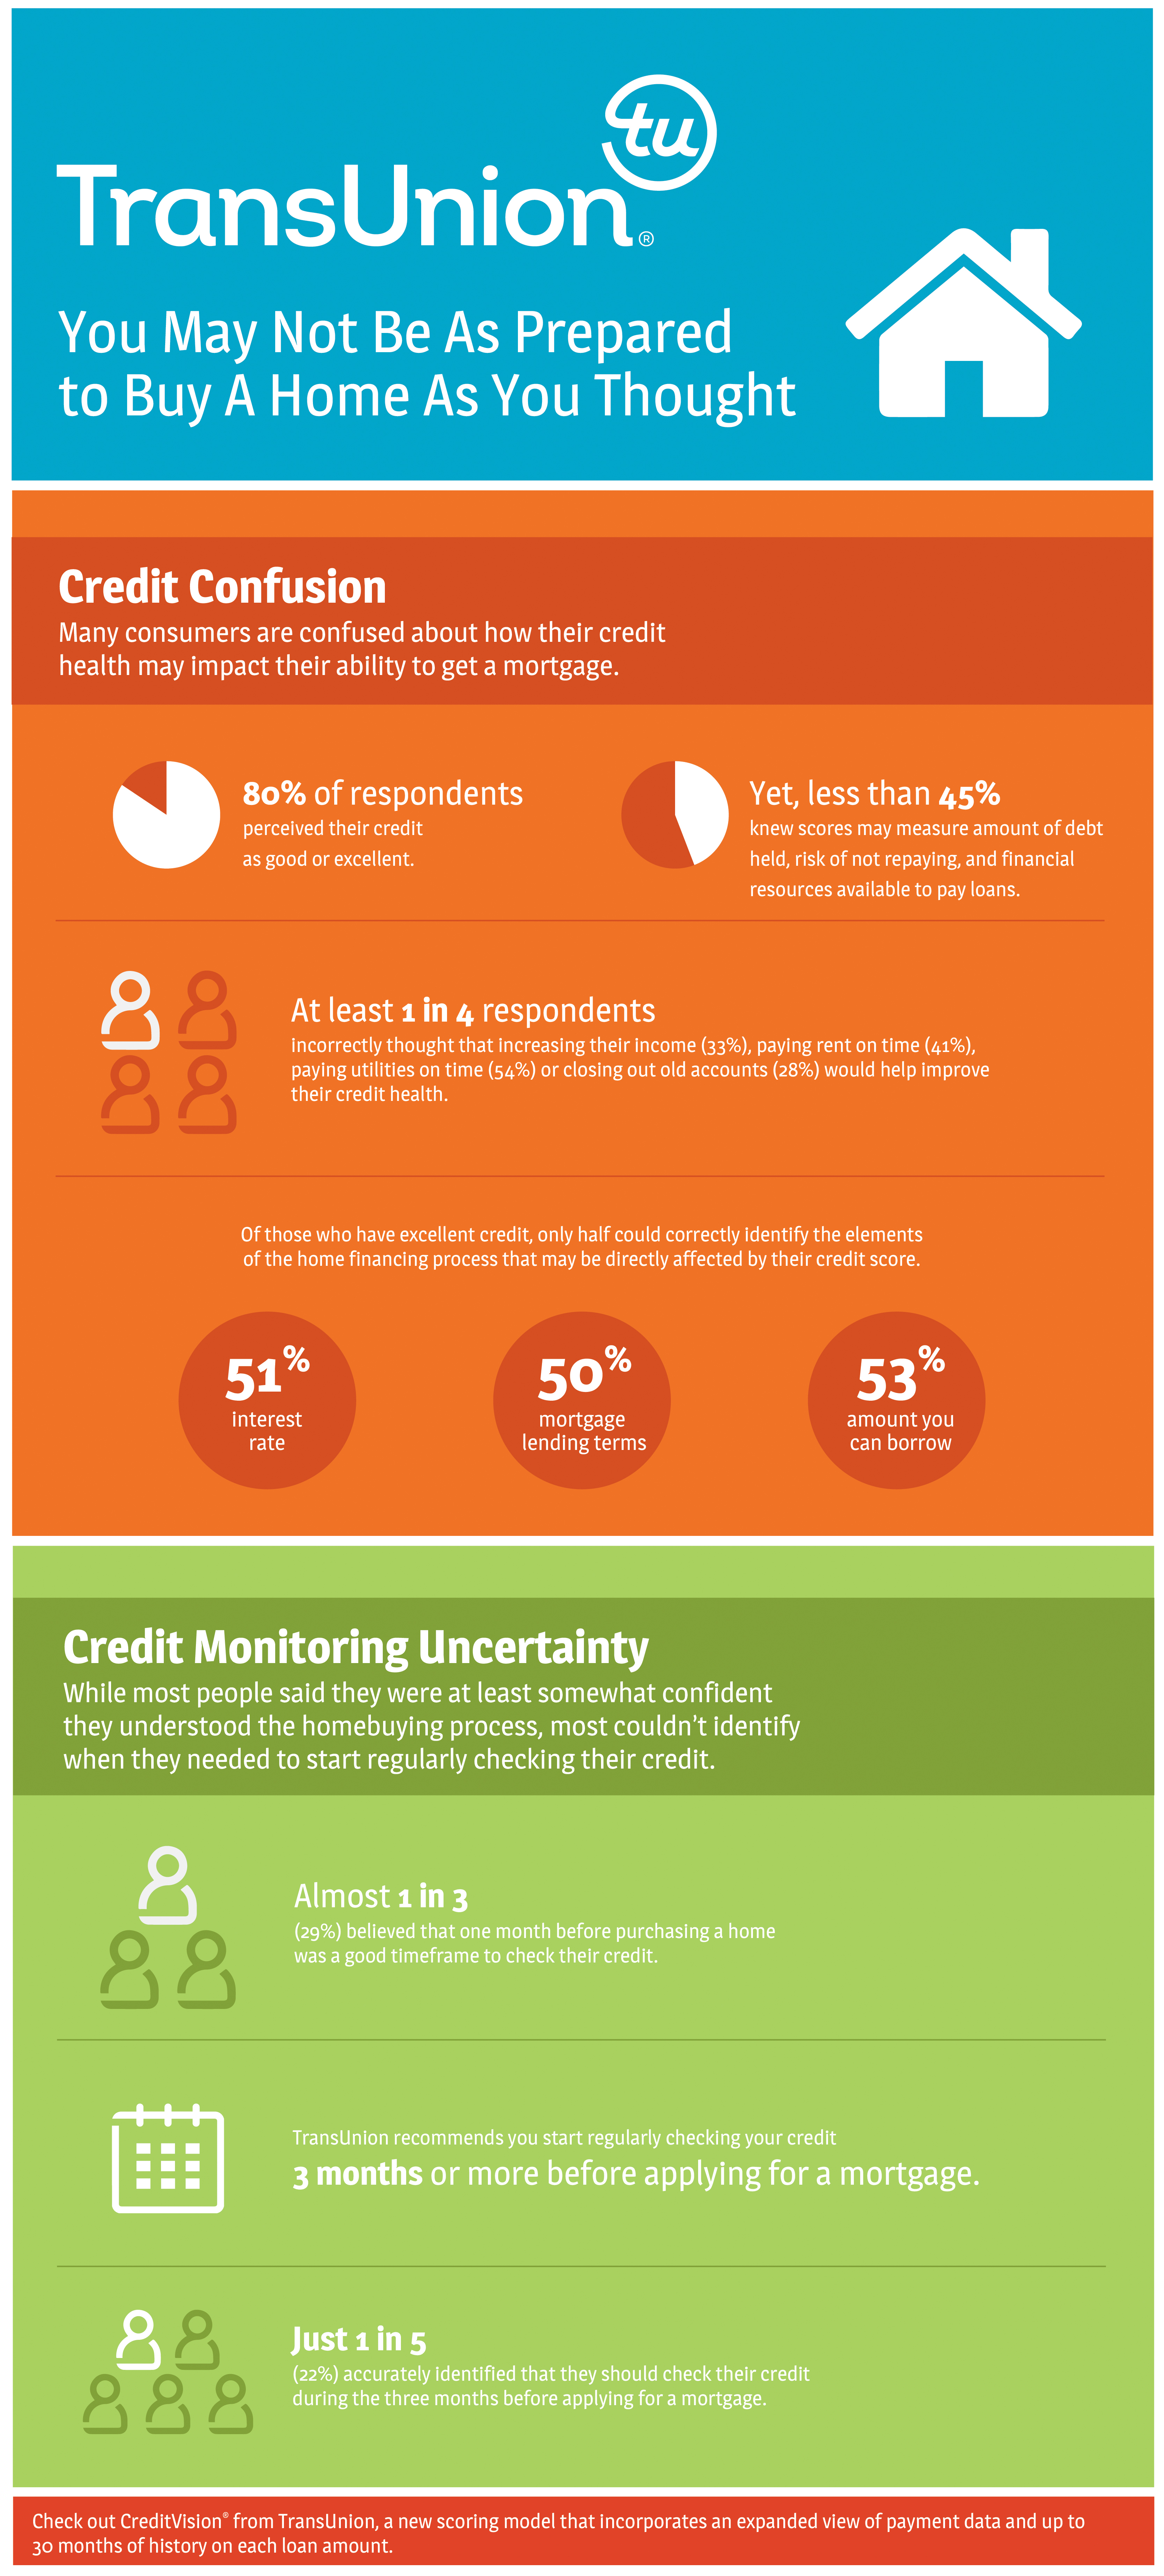 Home Buyers Uncertain About How A Credit Score Affects Financing Process